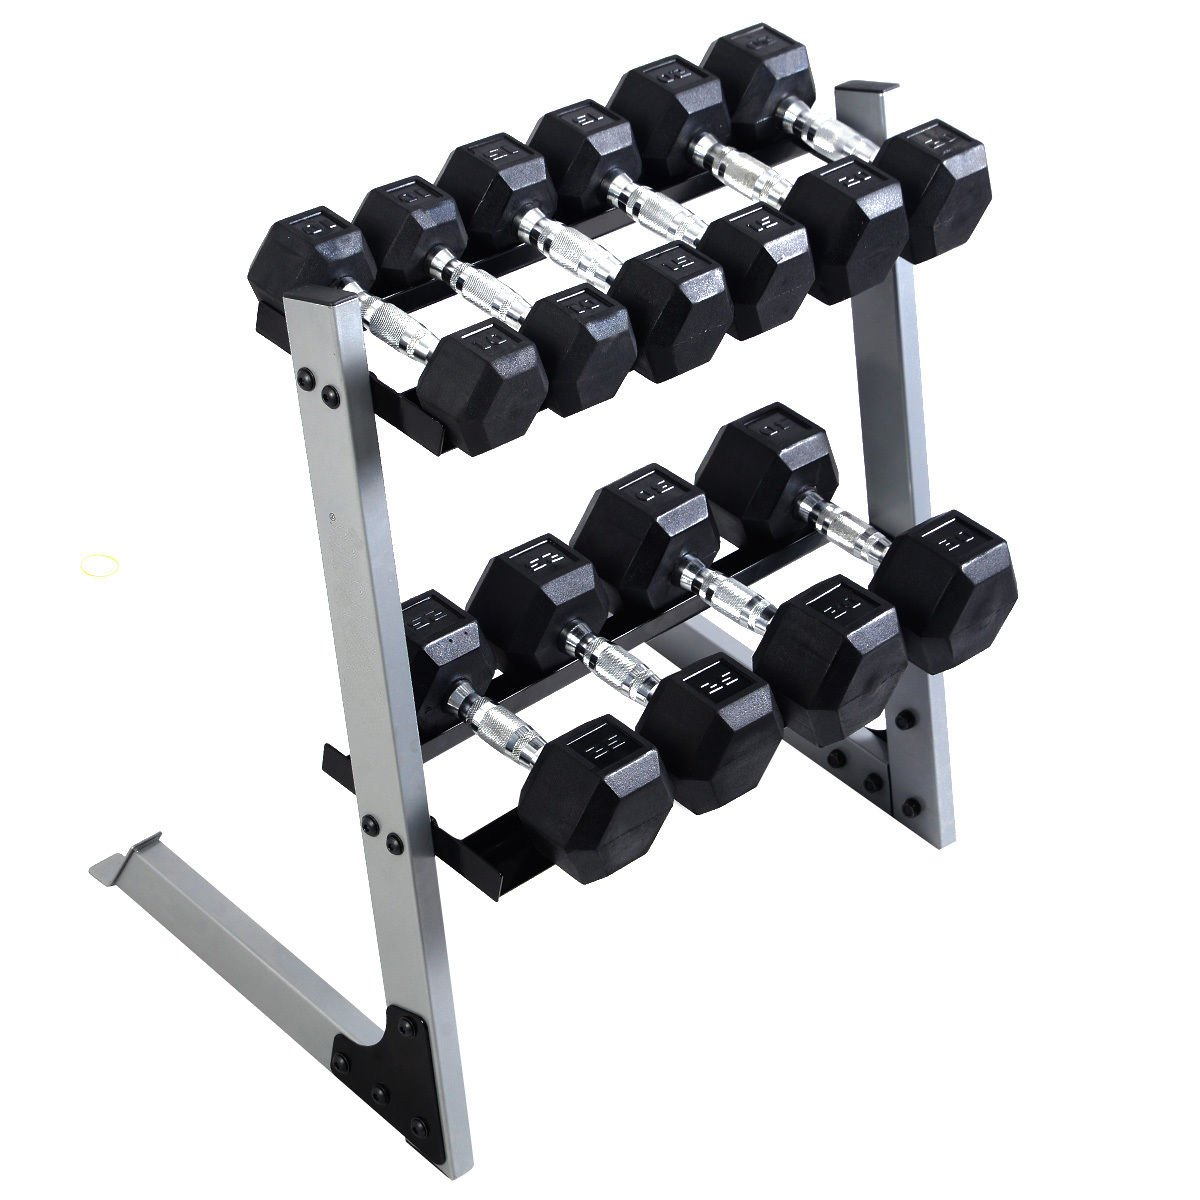 Gracelove 2 Tier 29'' Dumbbell Weight Storage Rack Home Stand Base + Multiple Weights Set